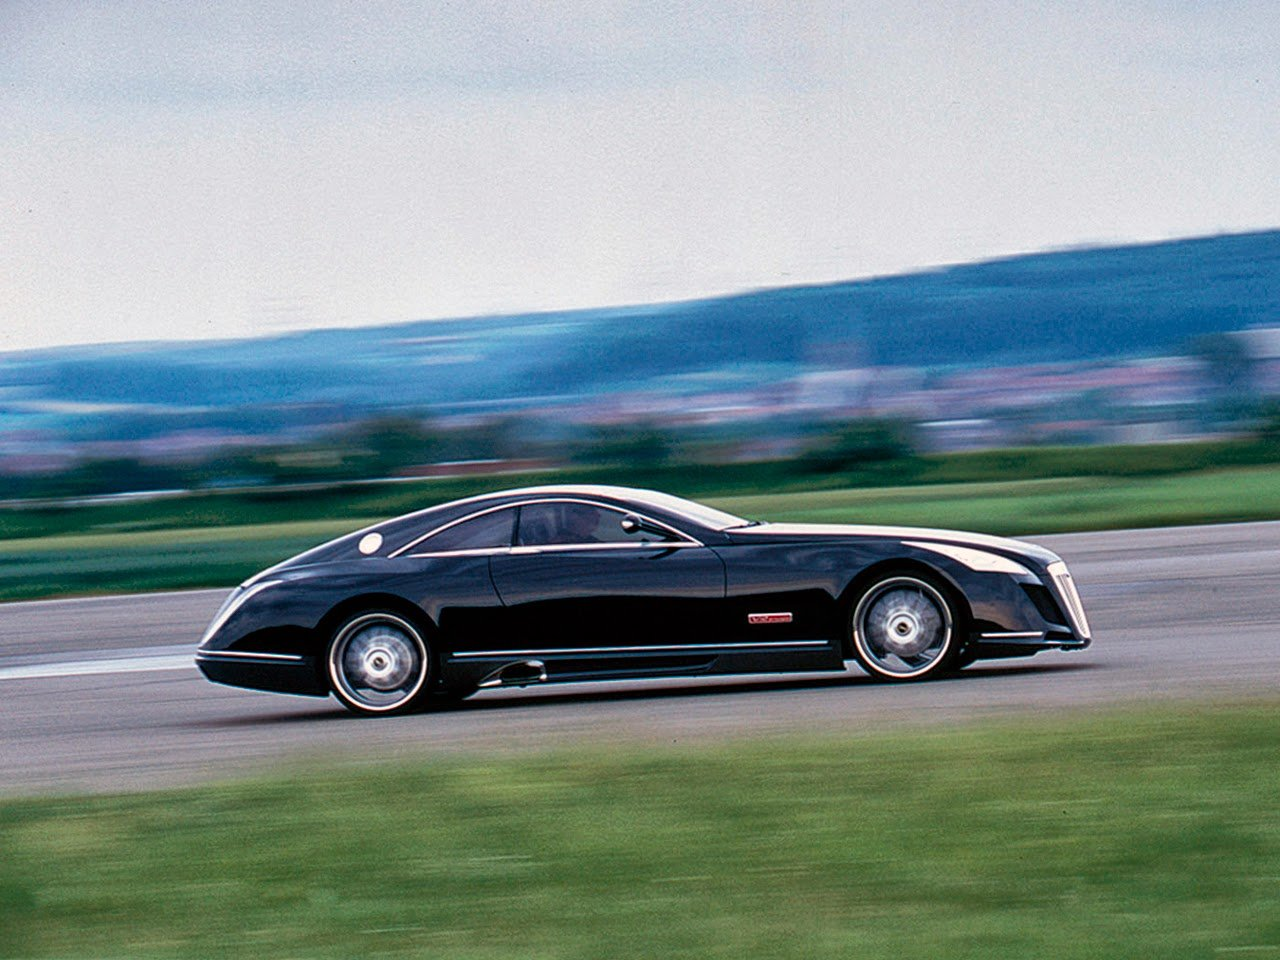 Latest Fab Wheels Digest F W D 2005 Maybach Exelero Concept Free Download